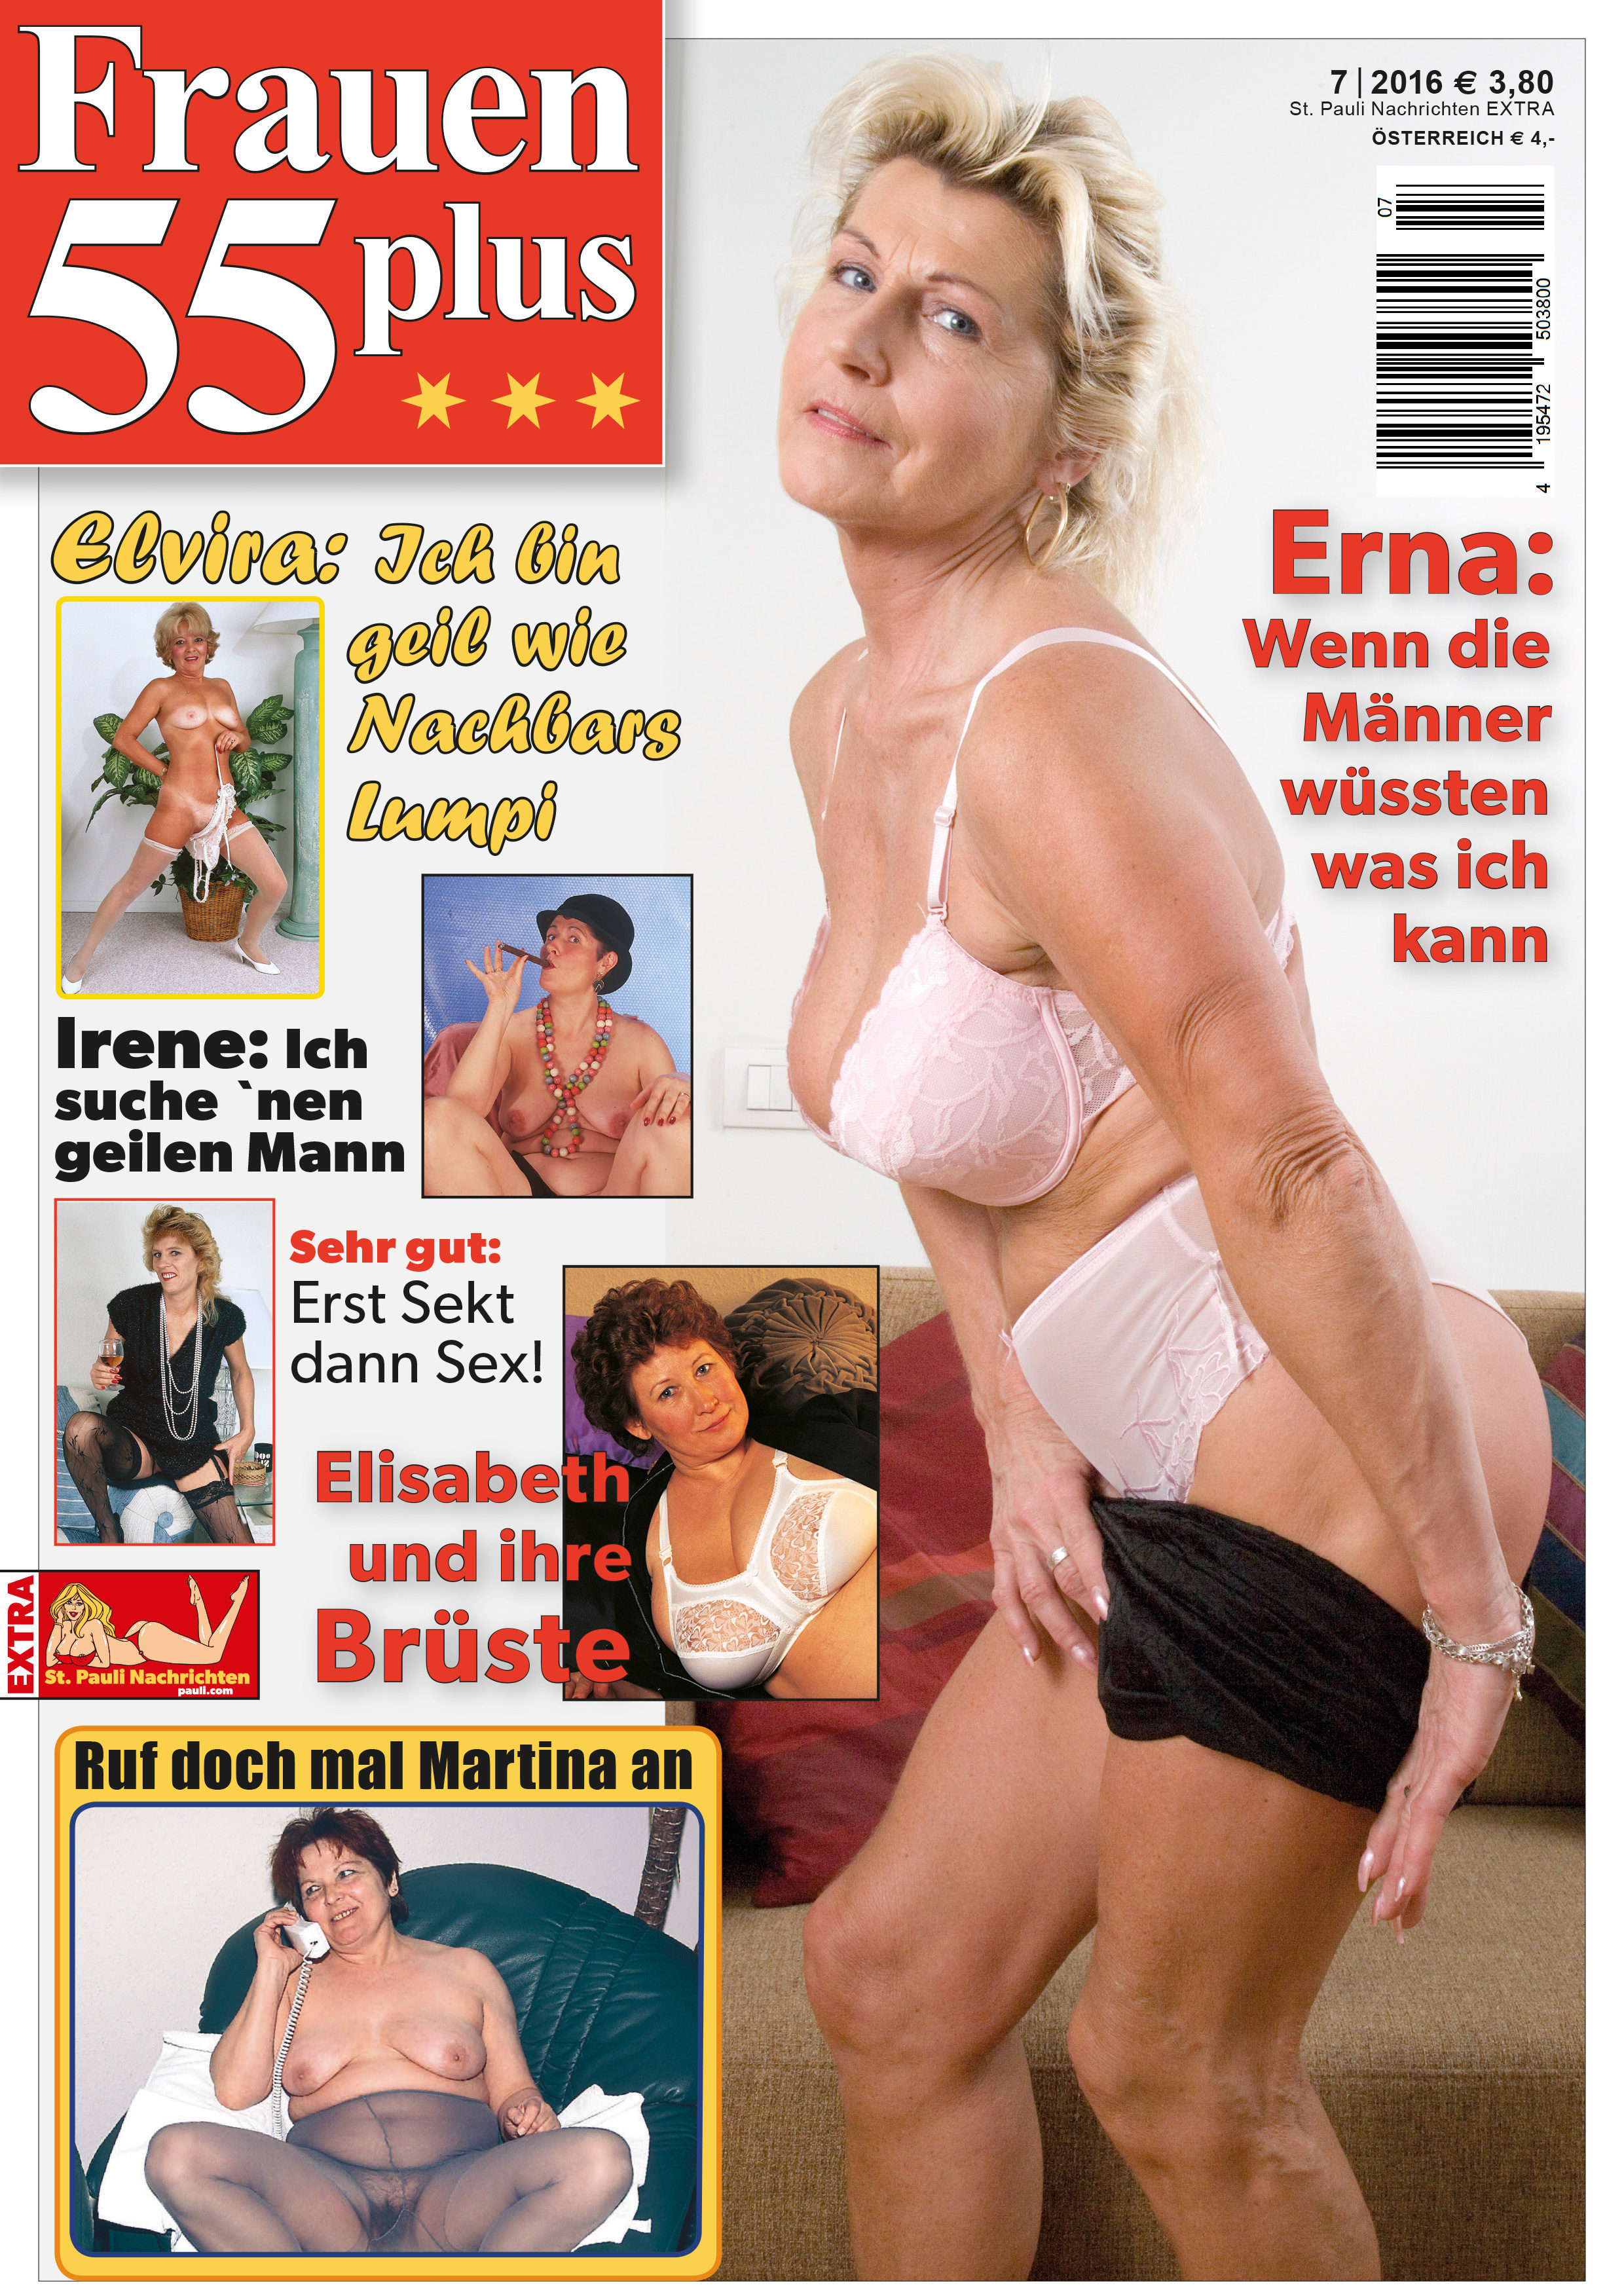 Spnextra 07 2016 Frauen 55plus Ebook Jürgen H Klebe Descargar